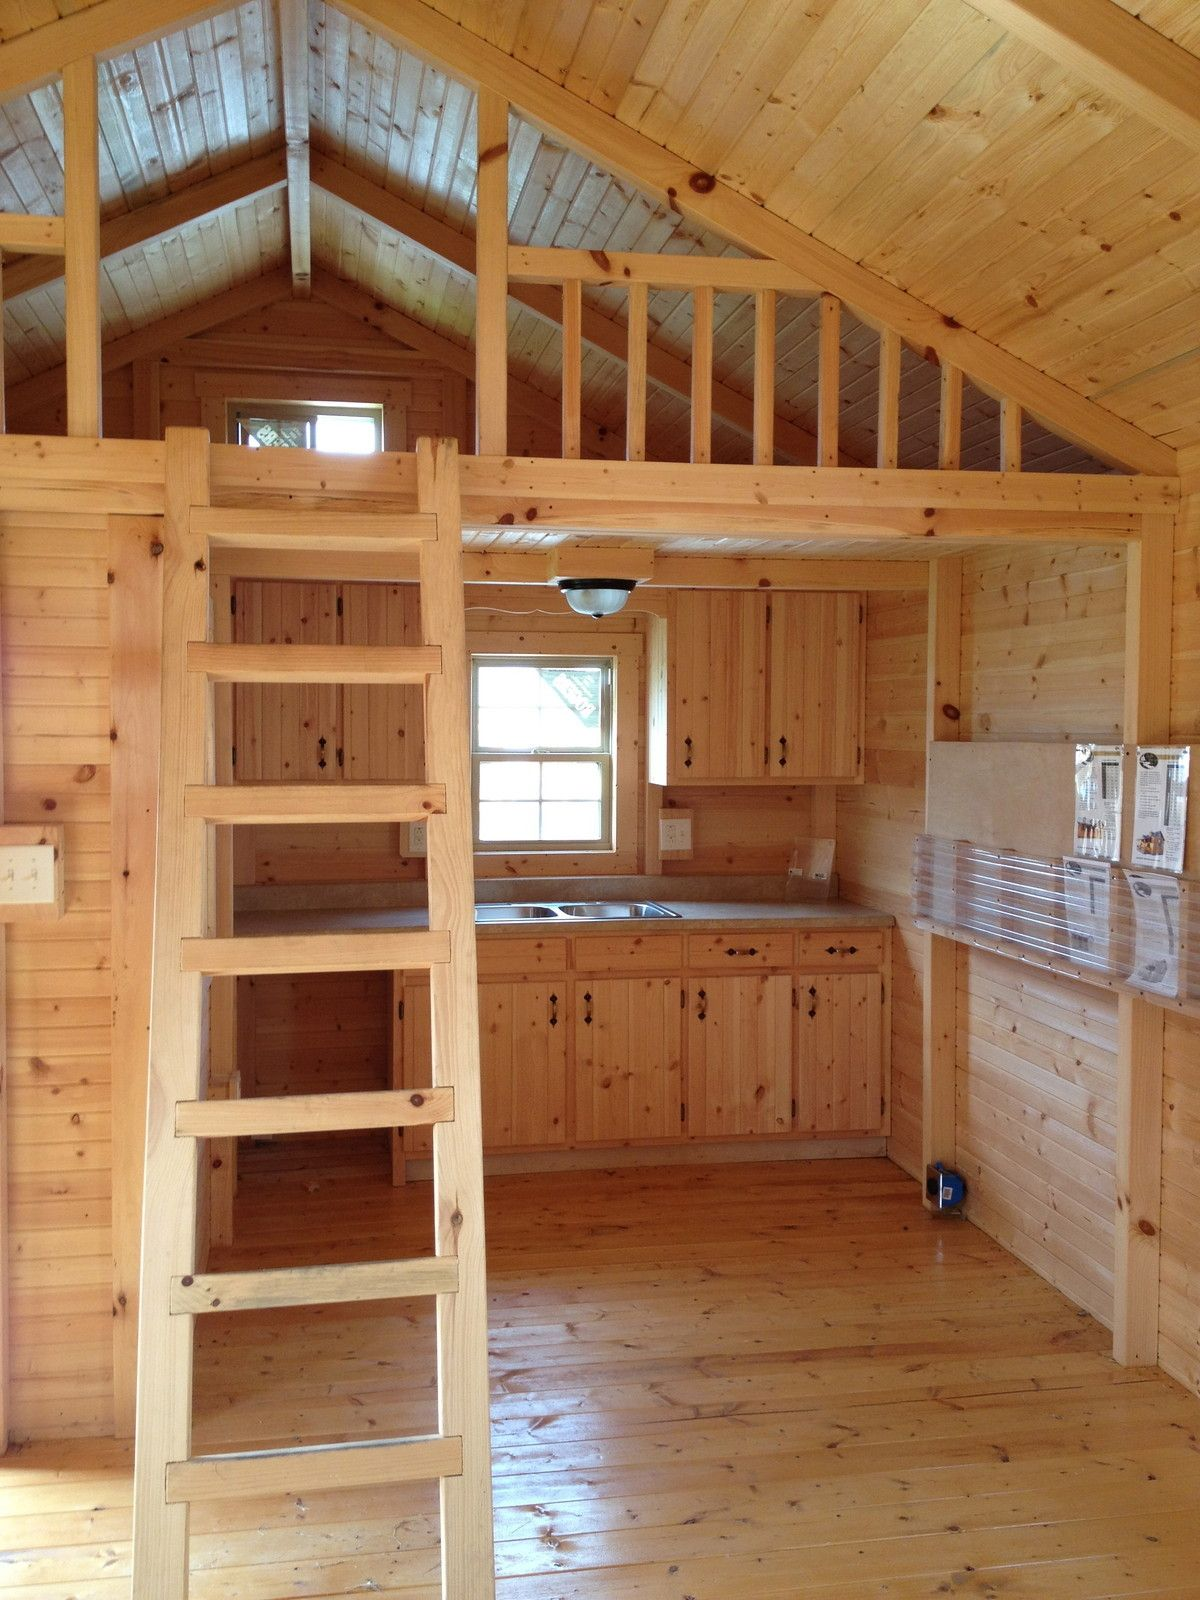 Tiny house ebay 14x24 cabin kit tiny homes pinterest for Small a frame cabin plans with loft